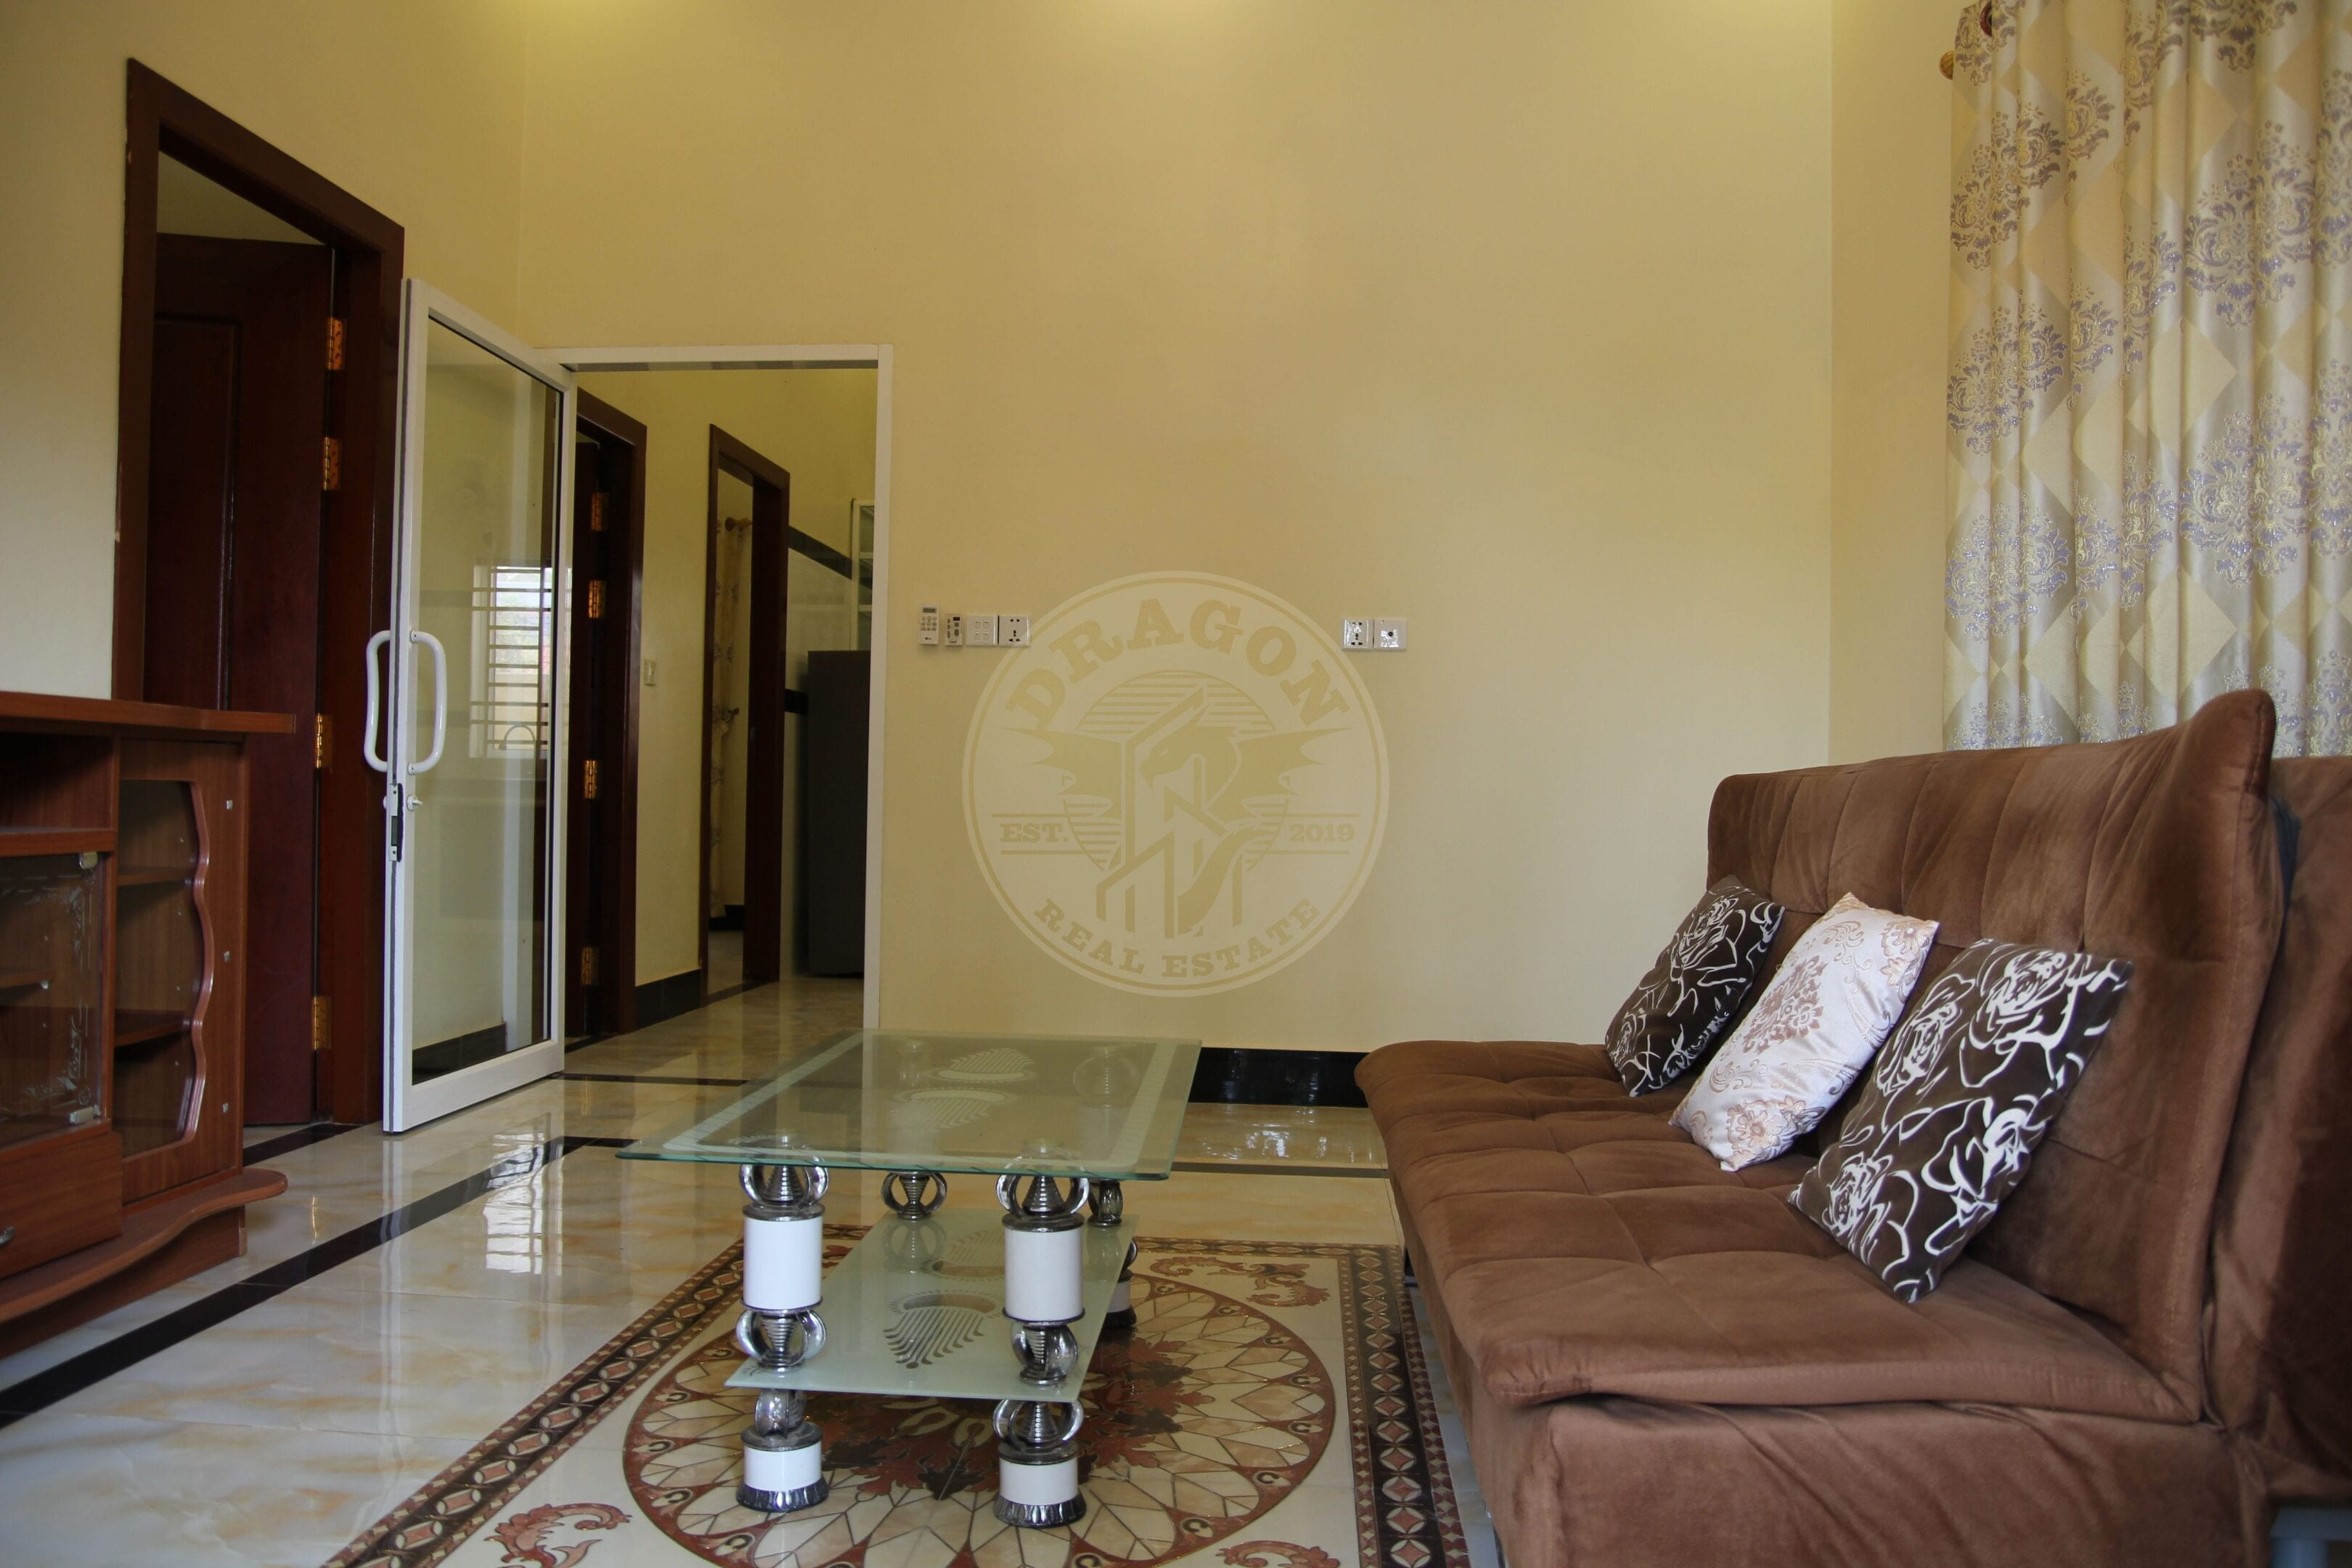 Bright and Spacious Villa. Rooms for Rent in Sihanoukville Cambodia